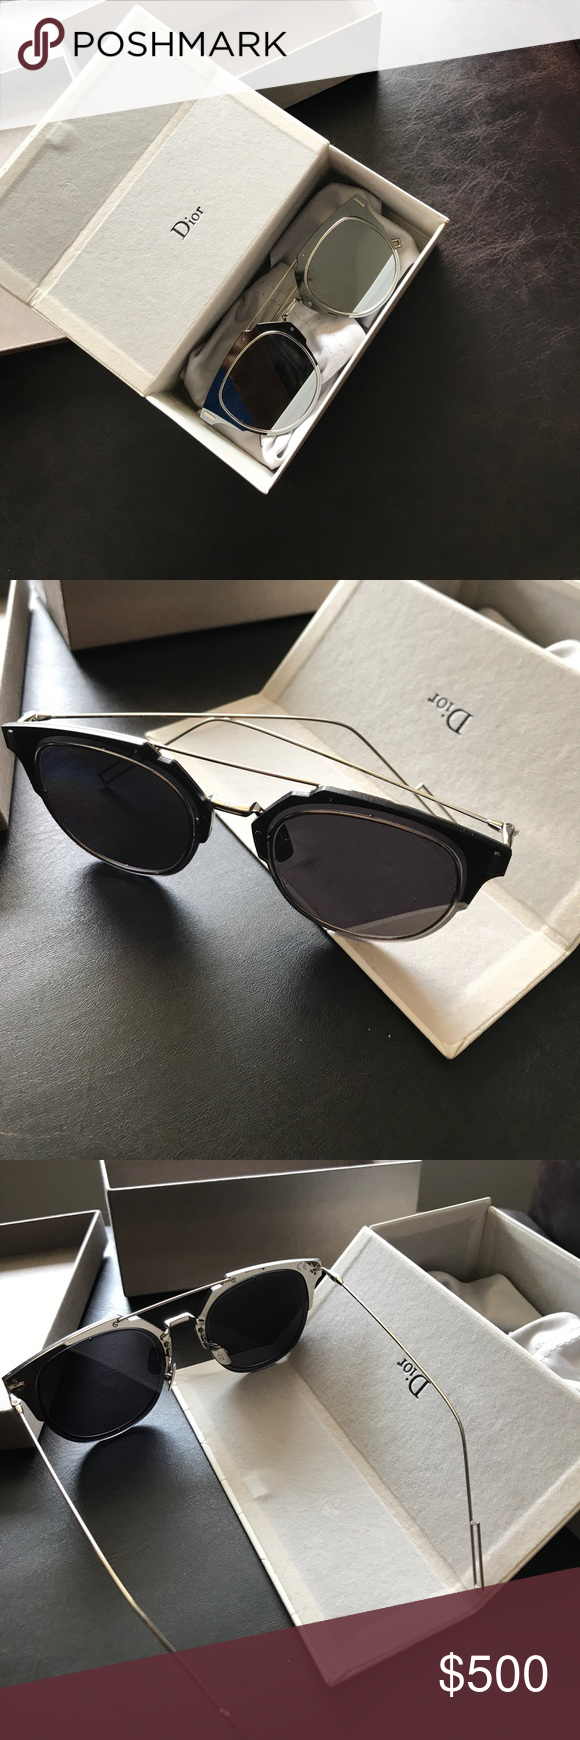 e0671f32e2c Authentic DIOR HOMME sunglasses Authentic Dior sunglasses 😎 they are  silver if you can t tell from the pictures. Comes with original box. Feel  free to make ...